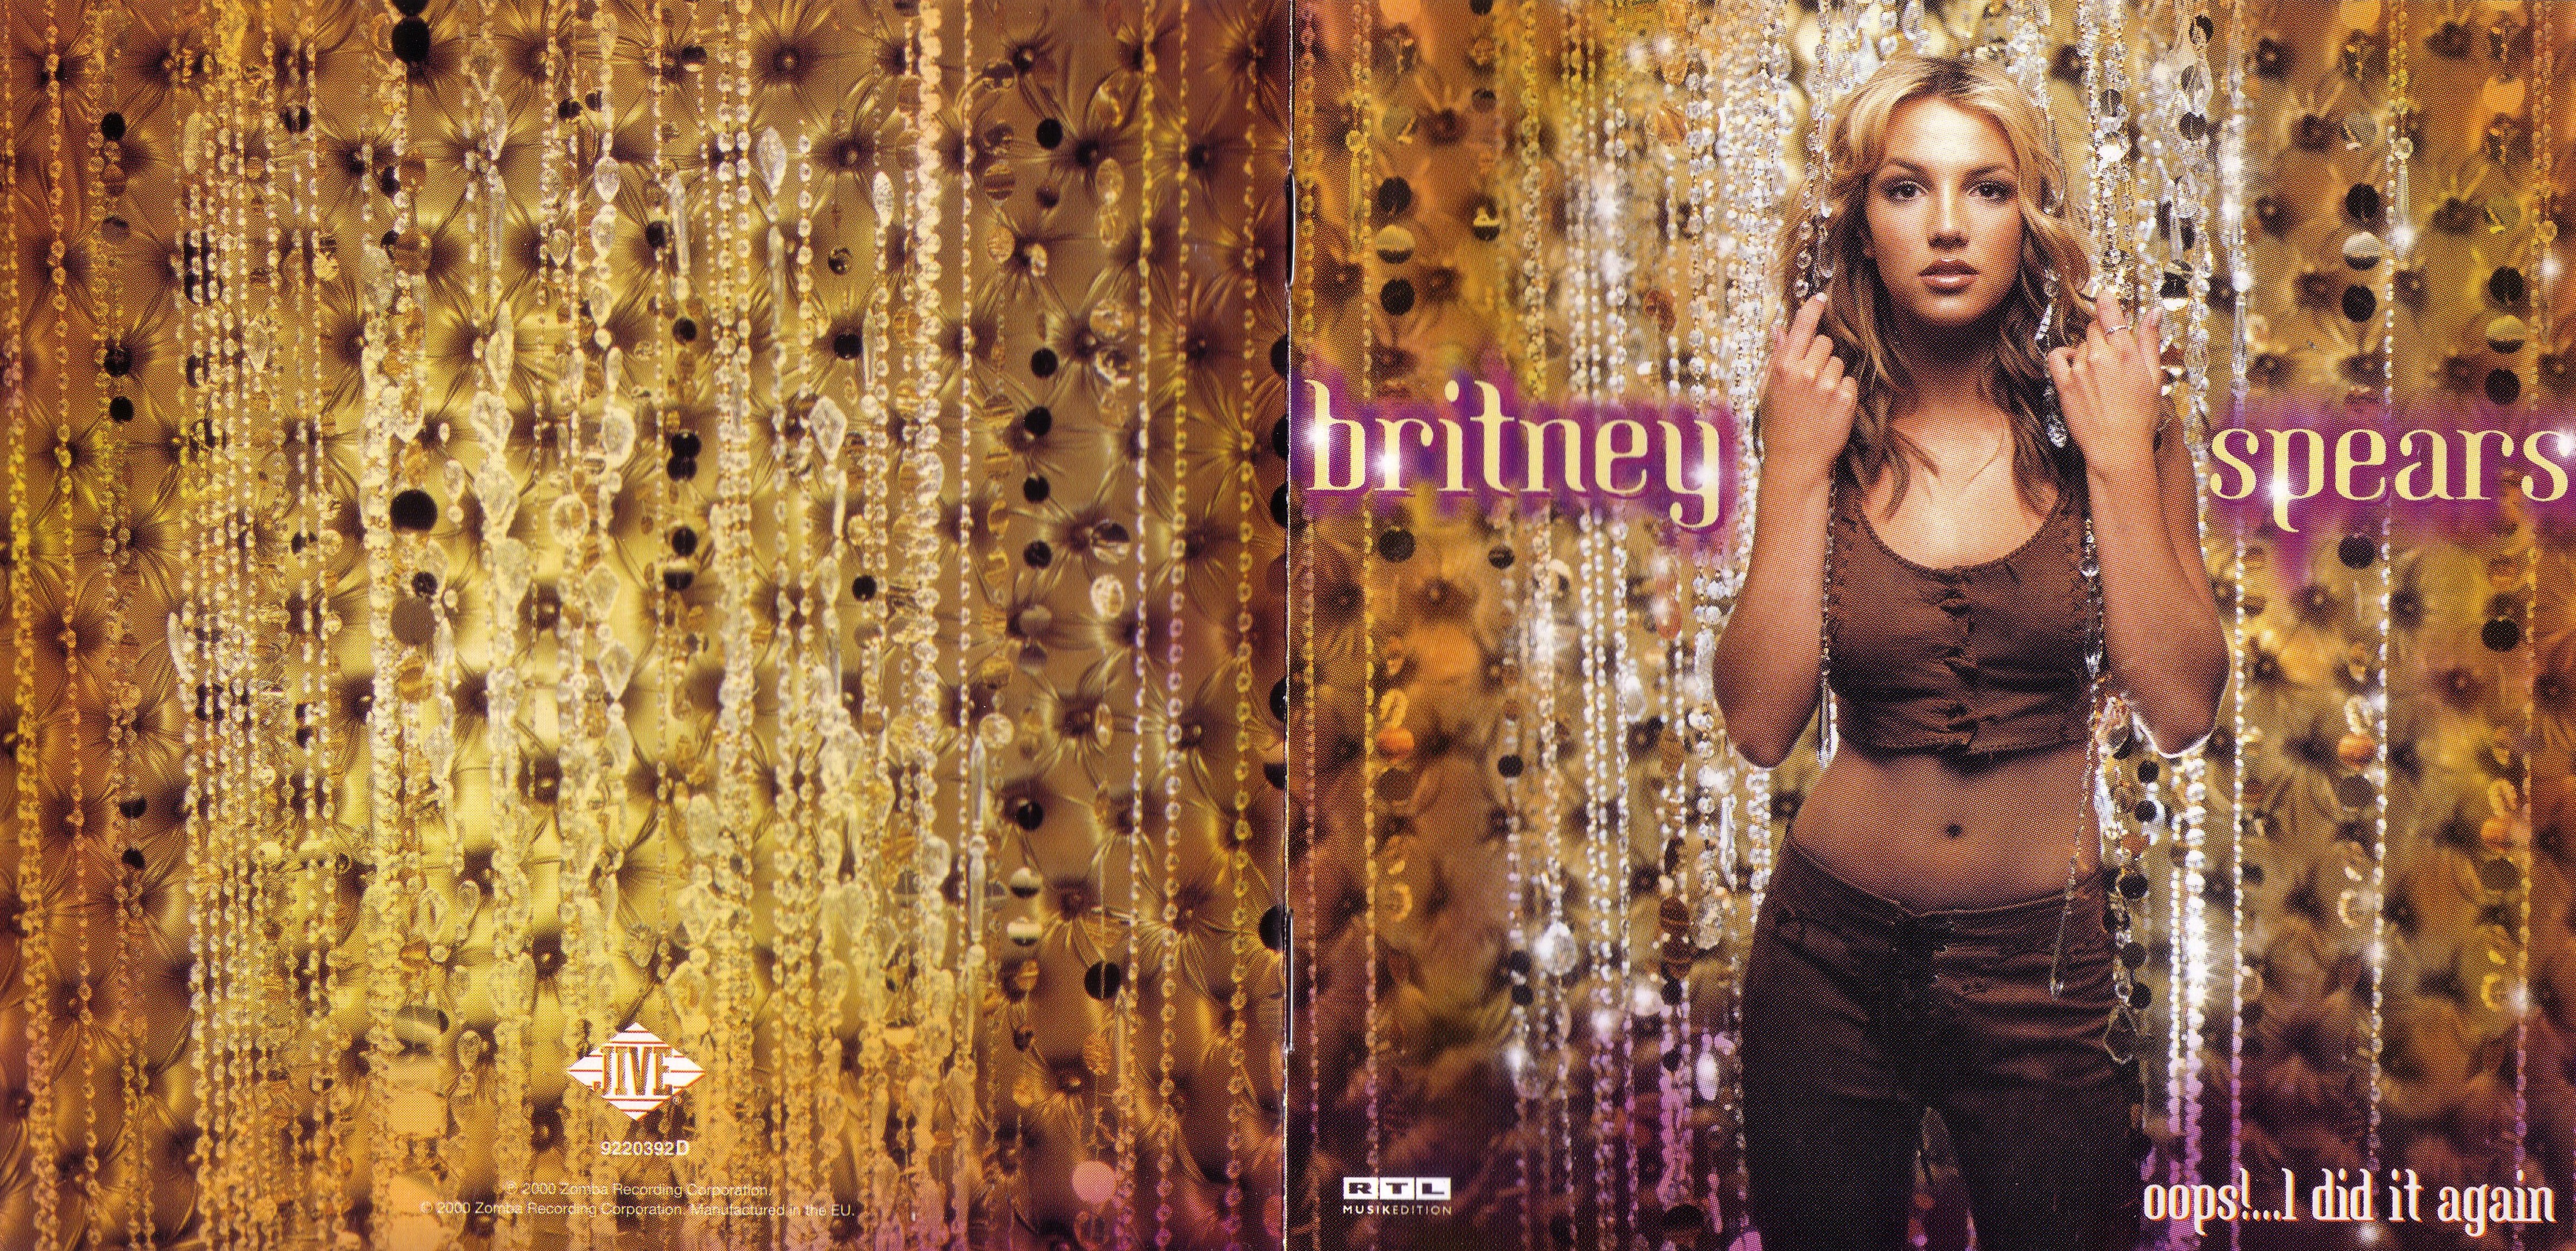 Copertina cd britney spears oops i did it again booklet 1 8